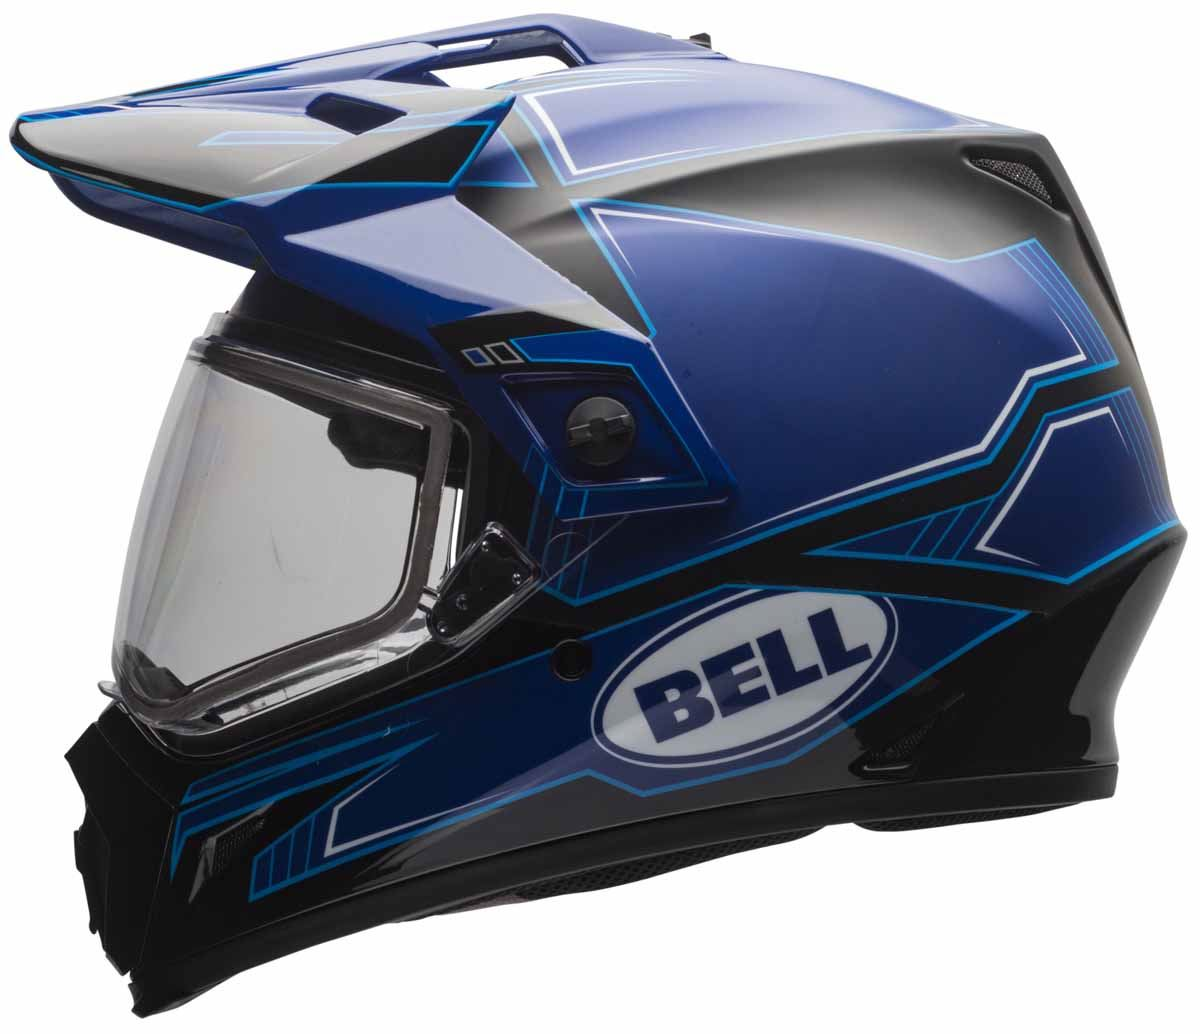 bell mx 9 adv snow helmet snowmobile adventure dual lens or electric shield dot ebay. Black Bedroom Furniture Sets. Home Design Ideas